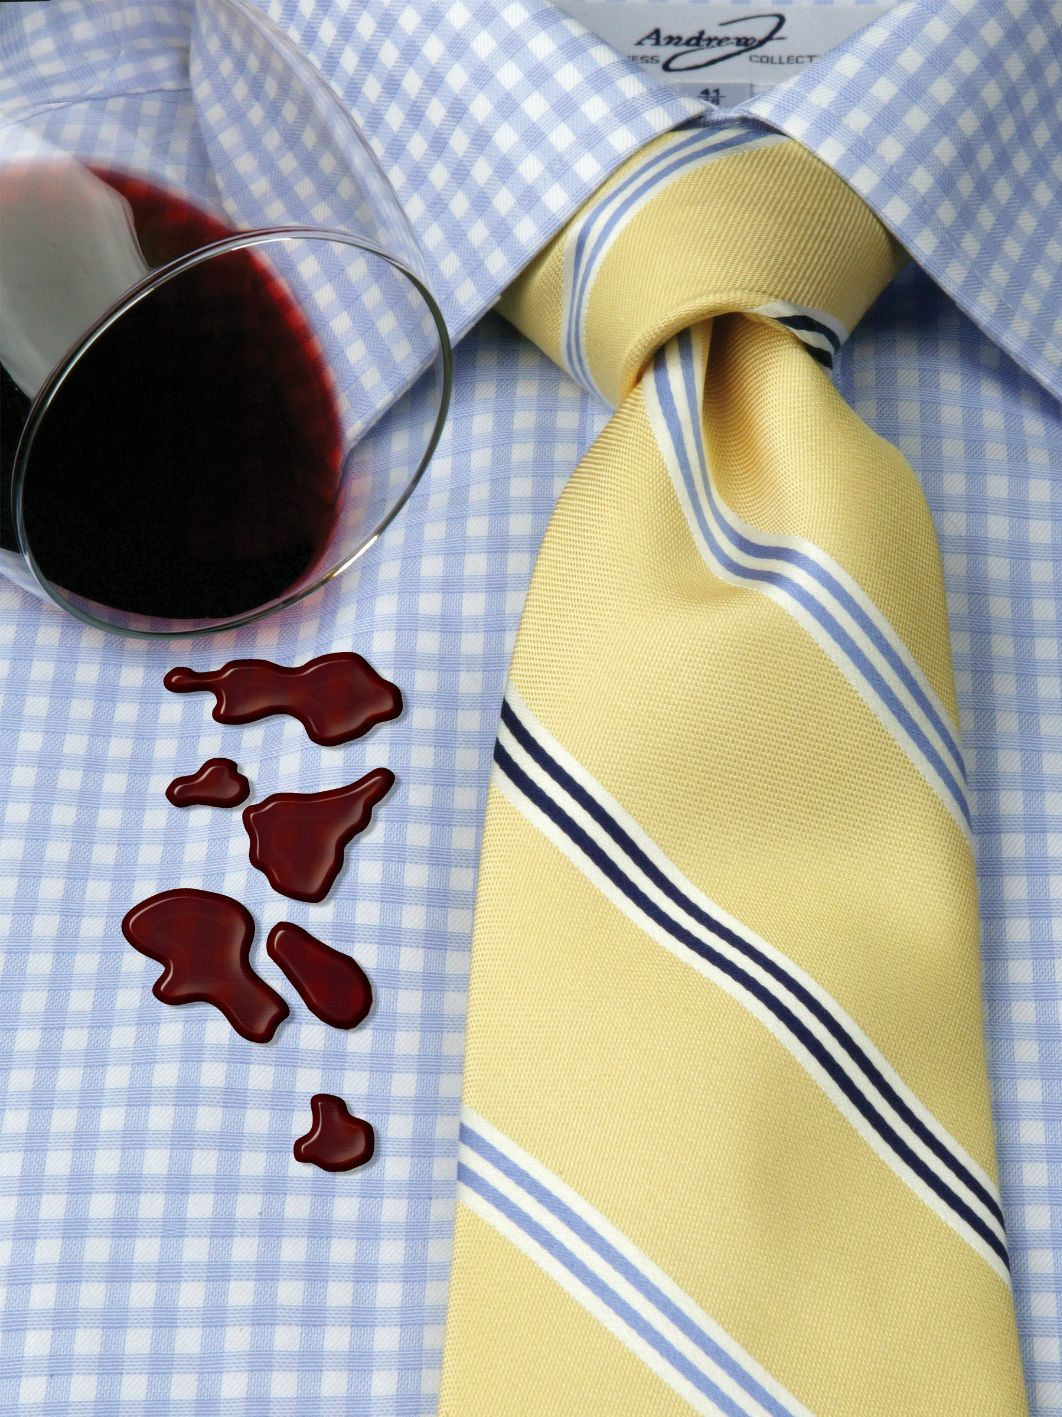 STAINS!  Nothing worse then getting mustard or grape juice on your favorite white shirt.